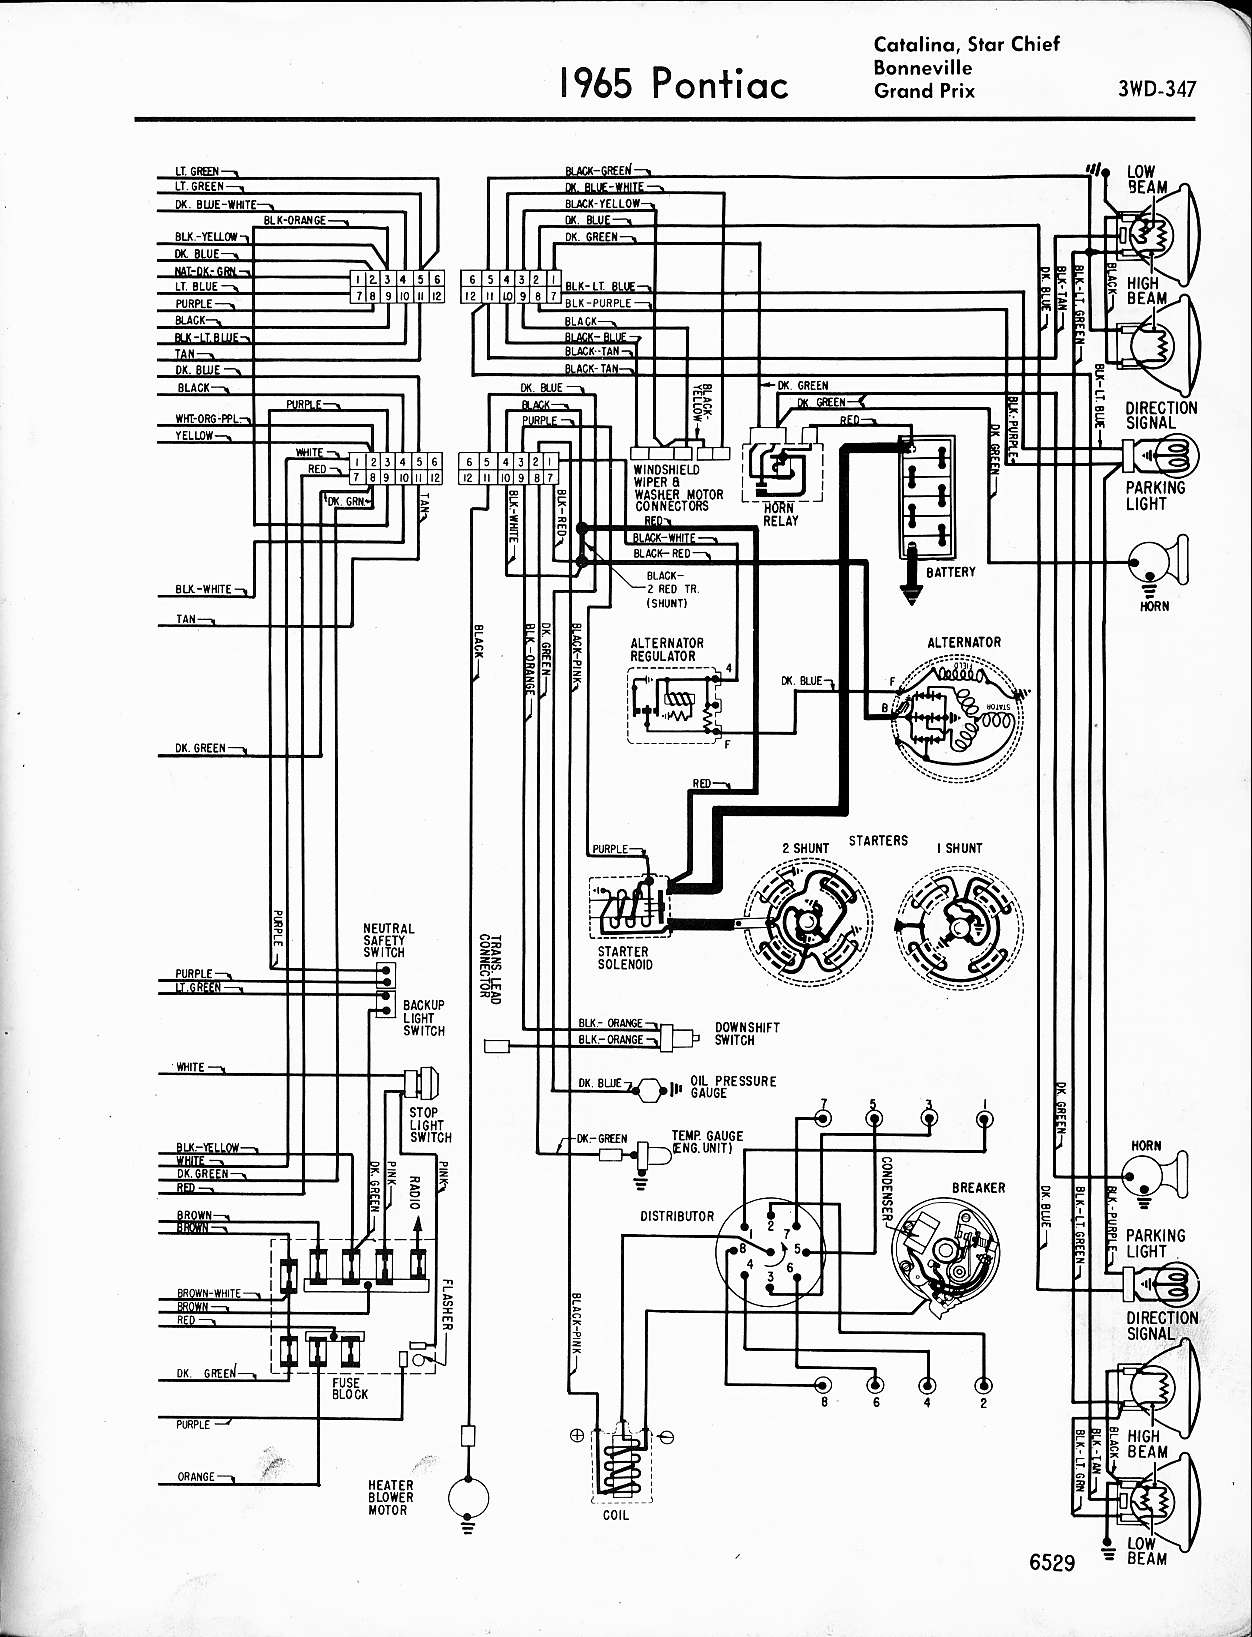 All Star Wiring Diagram Library Western Fuse 1965 Catalina Chief Bonneville Grand Prix Left Page